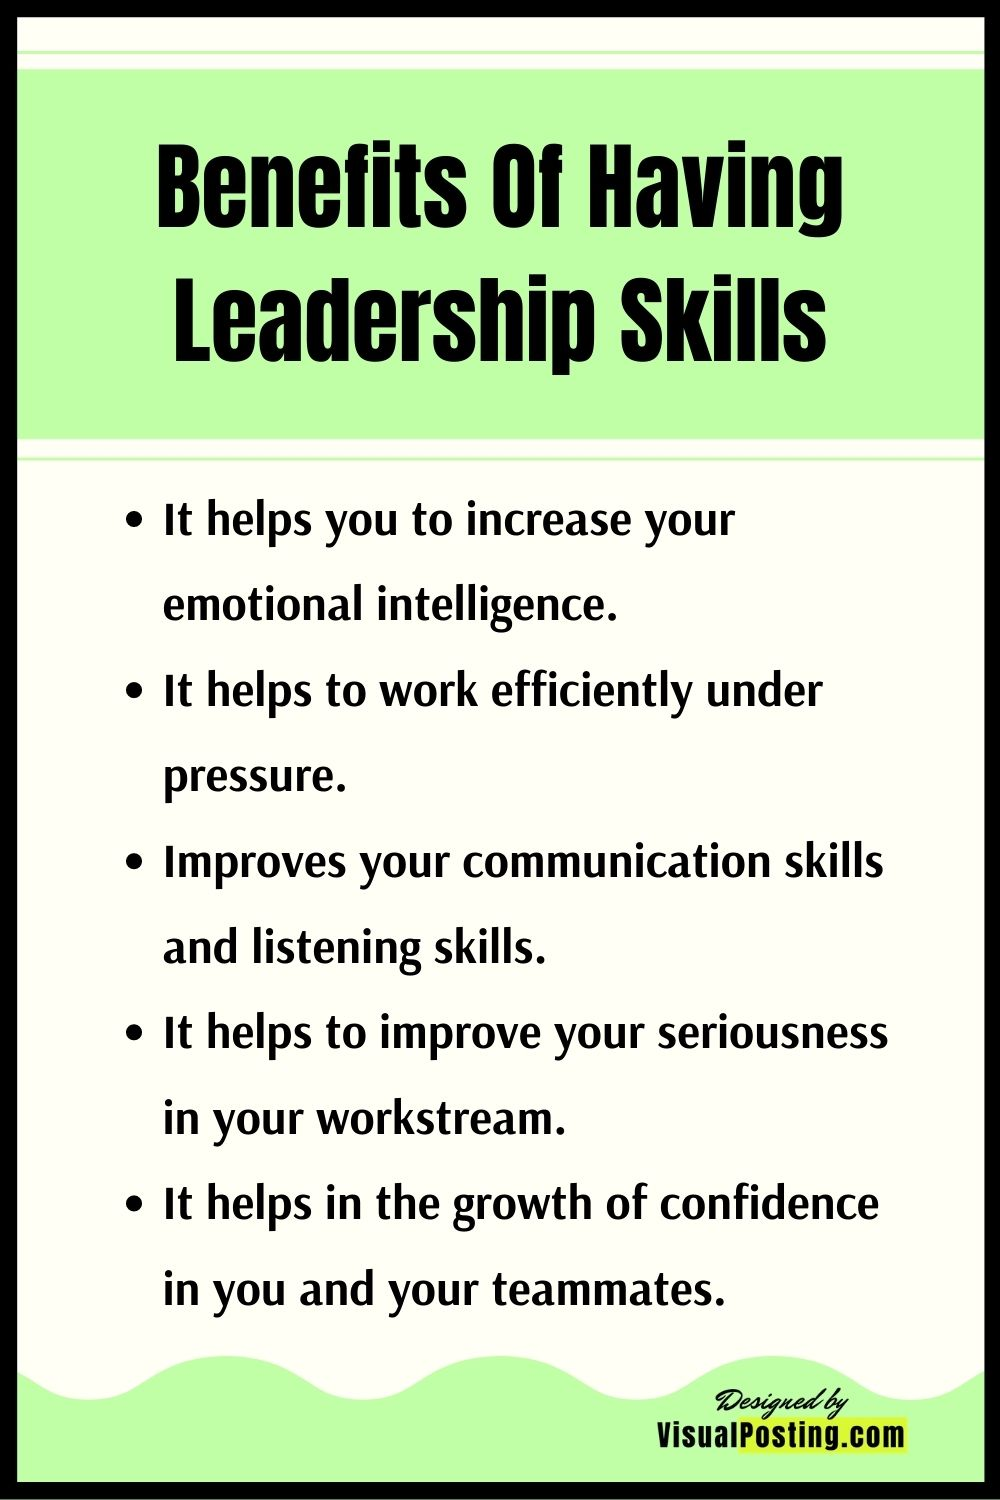 Benefits of having leadership skills.jpg